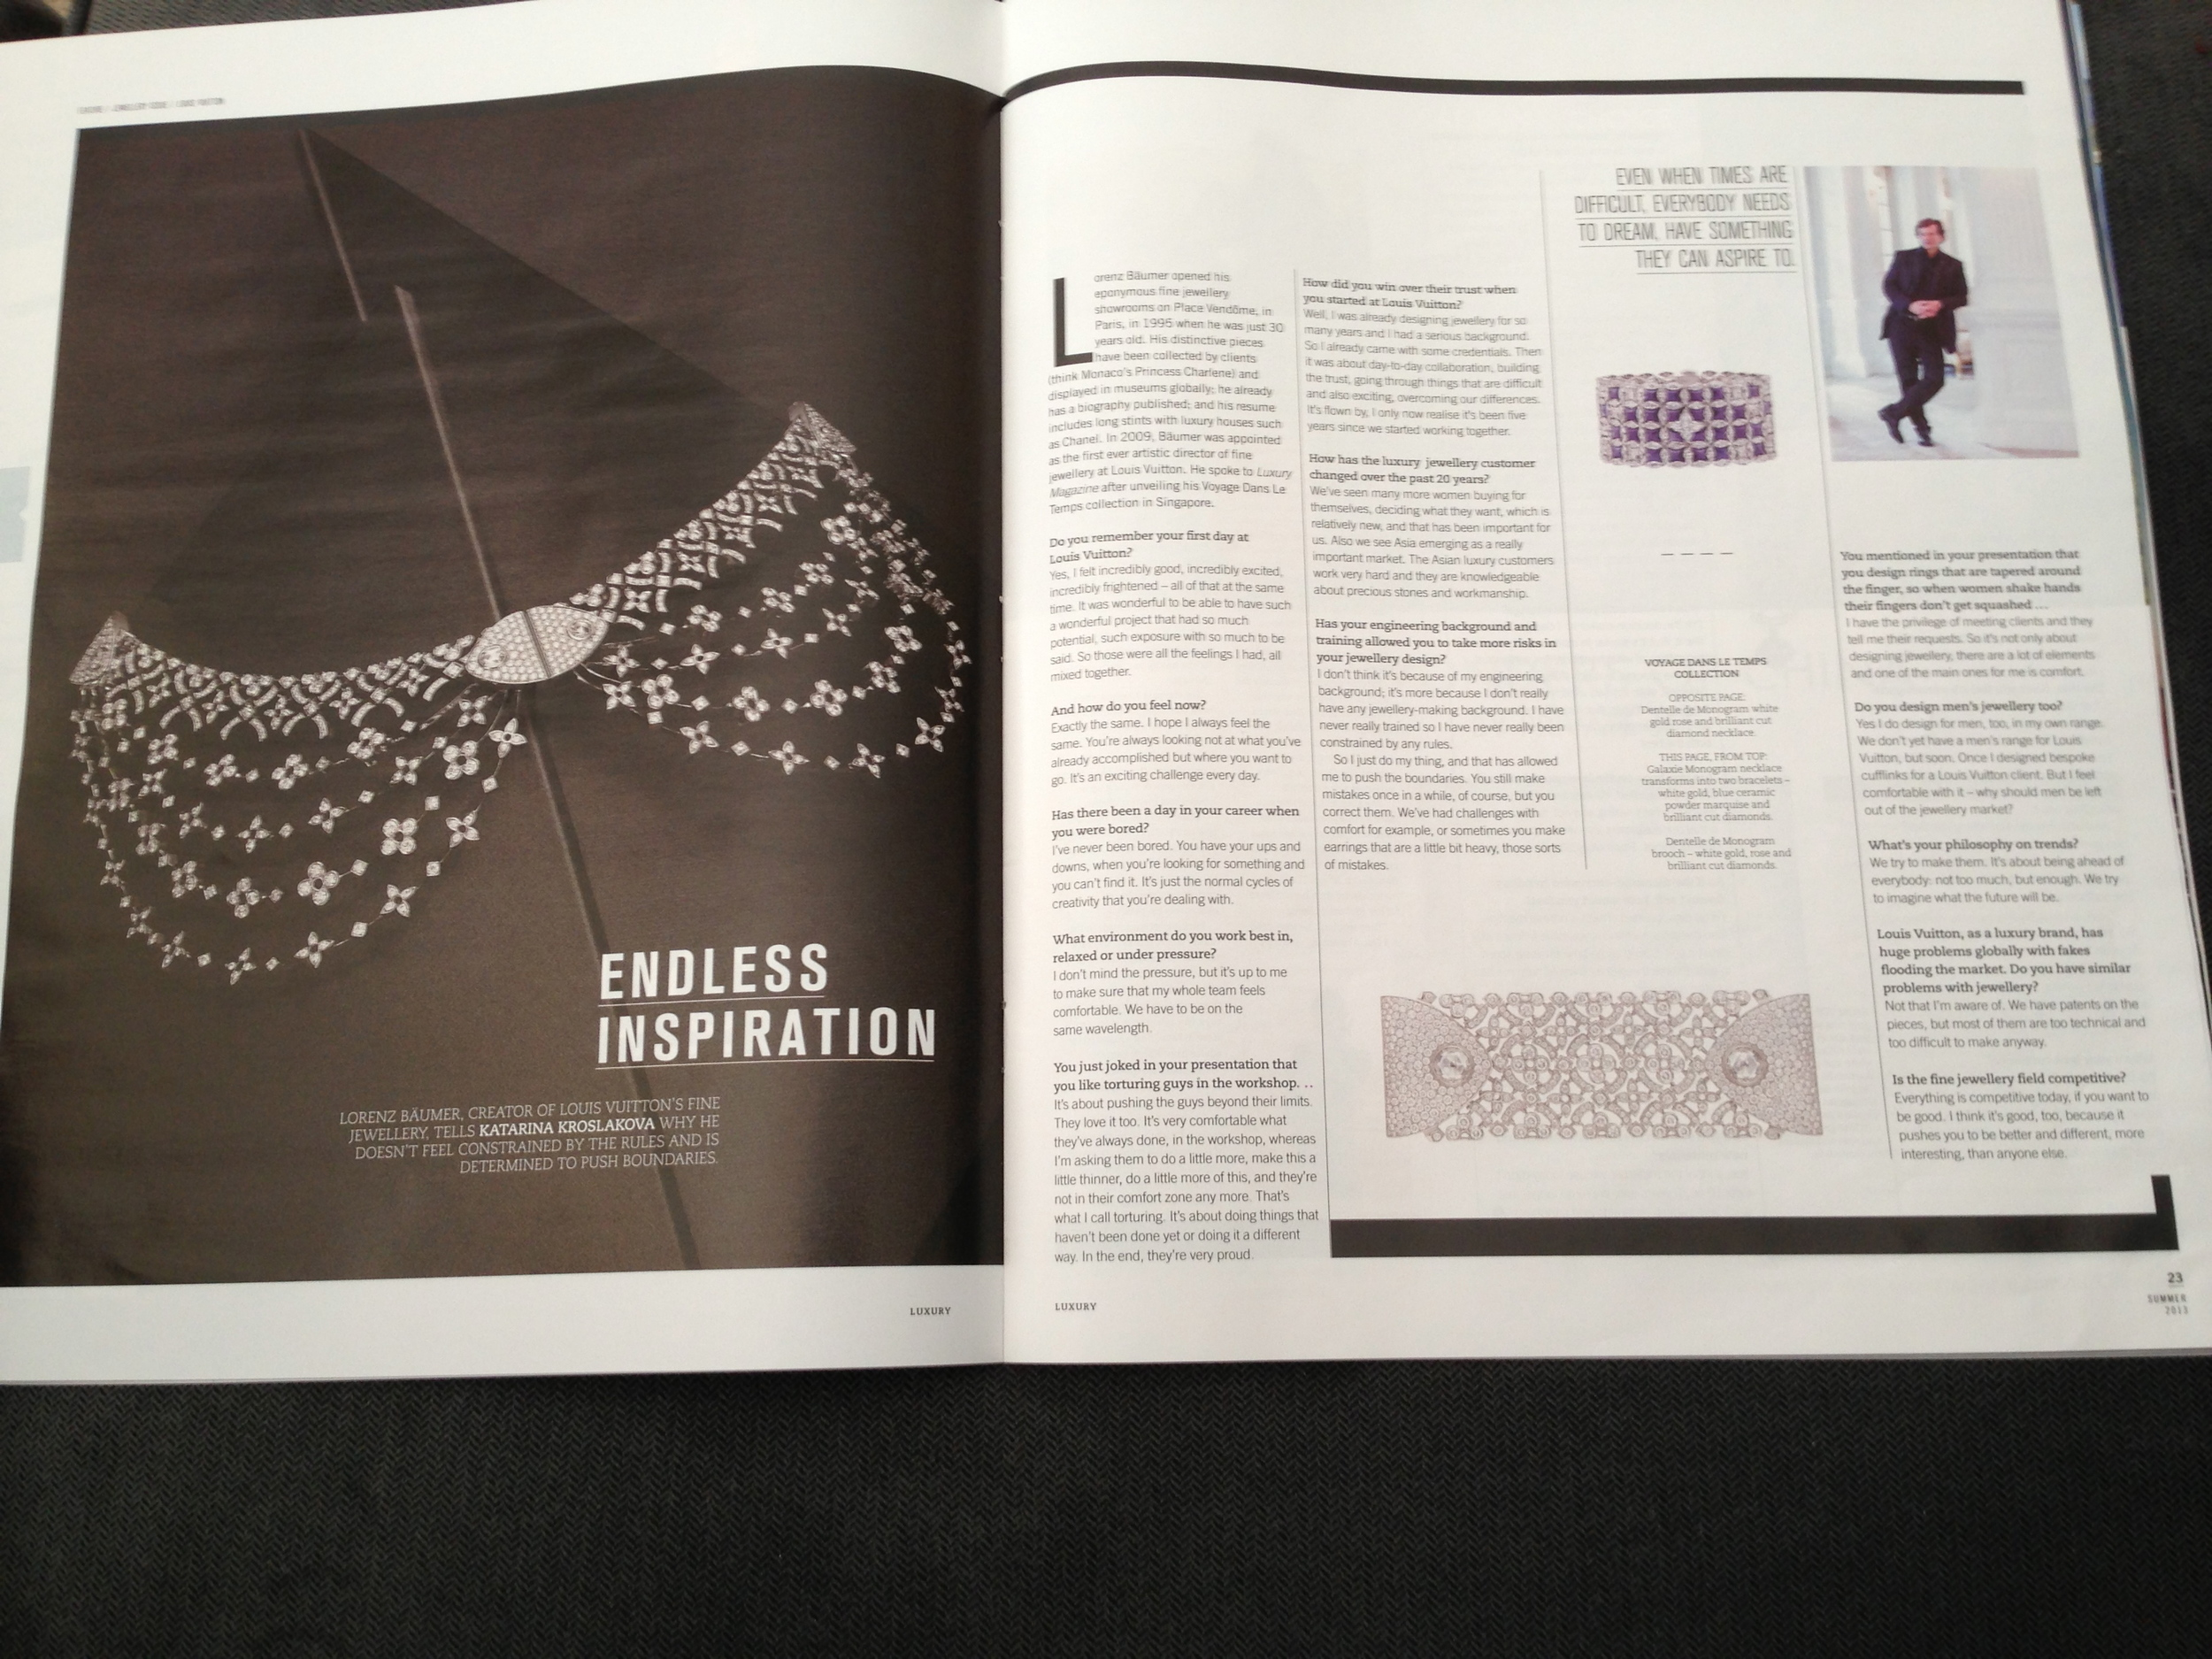 Garth Knight collector & collaborator, Lorenz Baumer, Head of Fine Jewels for LouisVuitton, as featured in the AFR Luxury magazine, 15.11.13